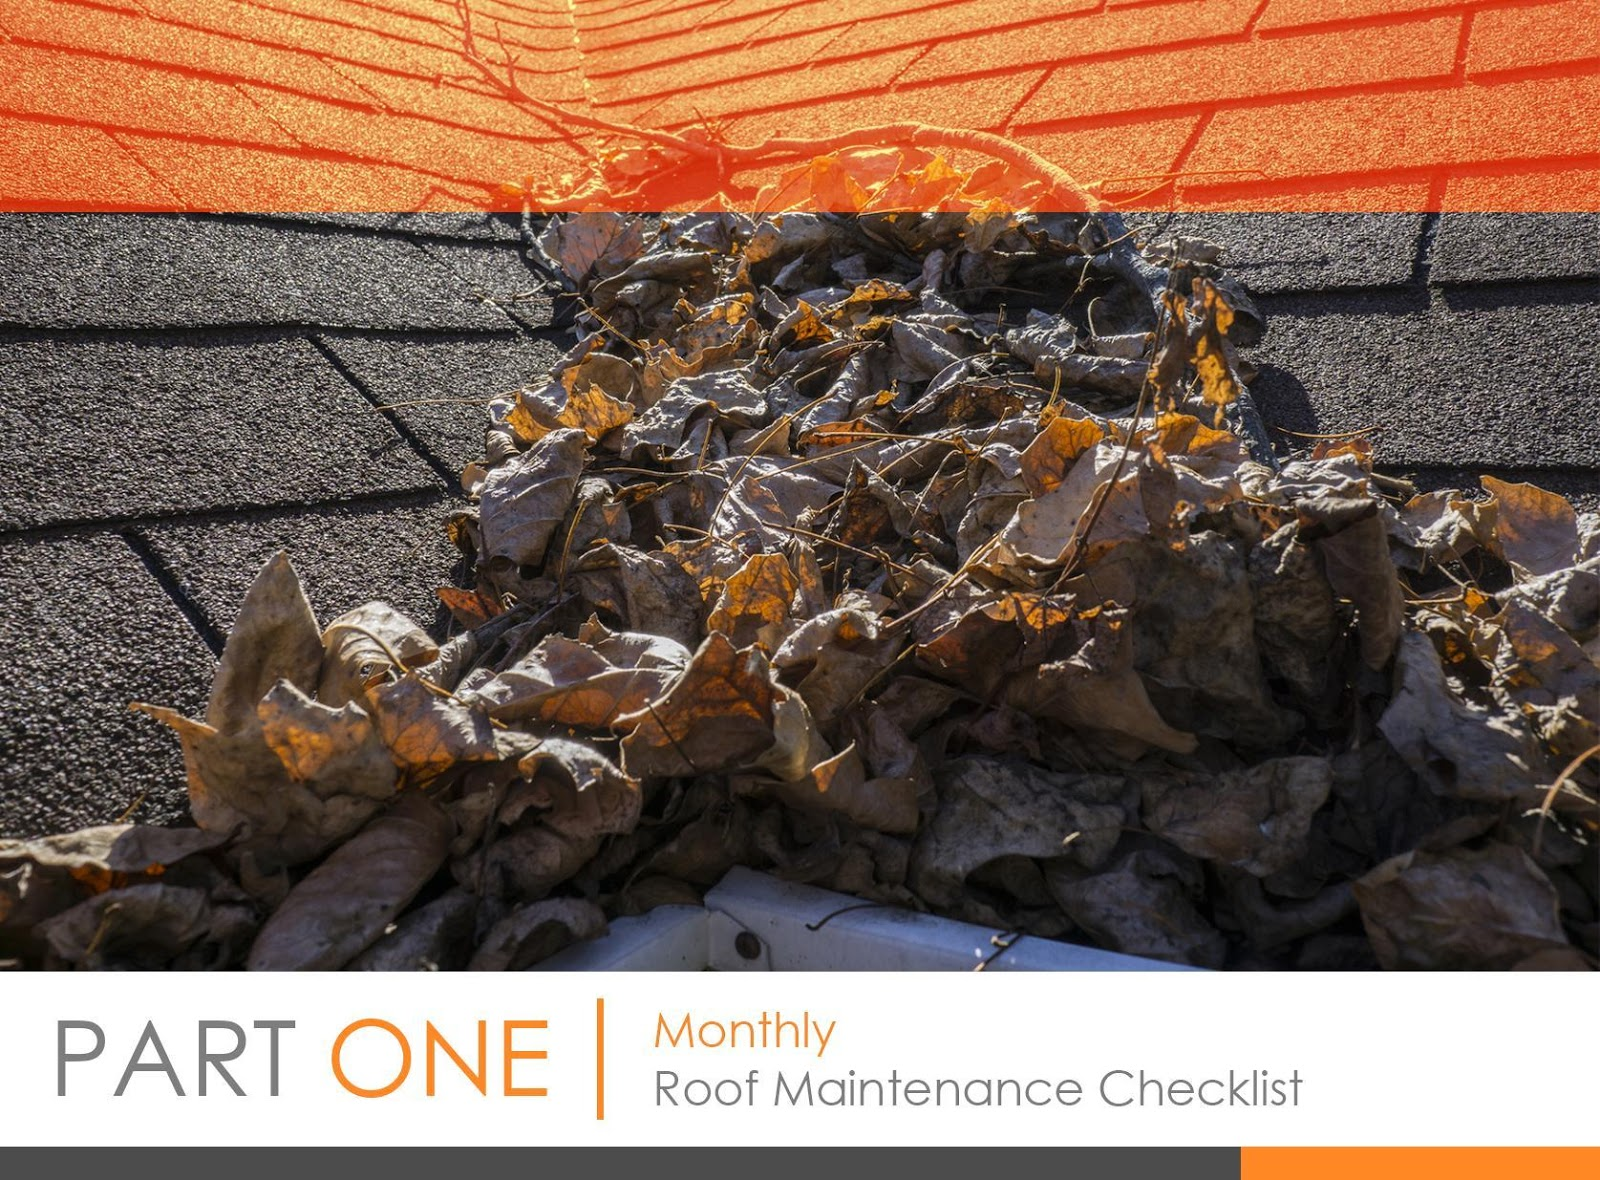 Monthly Roof Maintenance Checklist